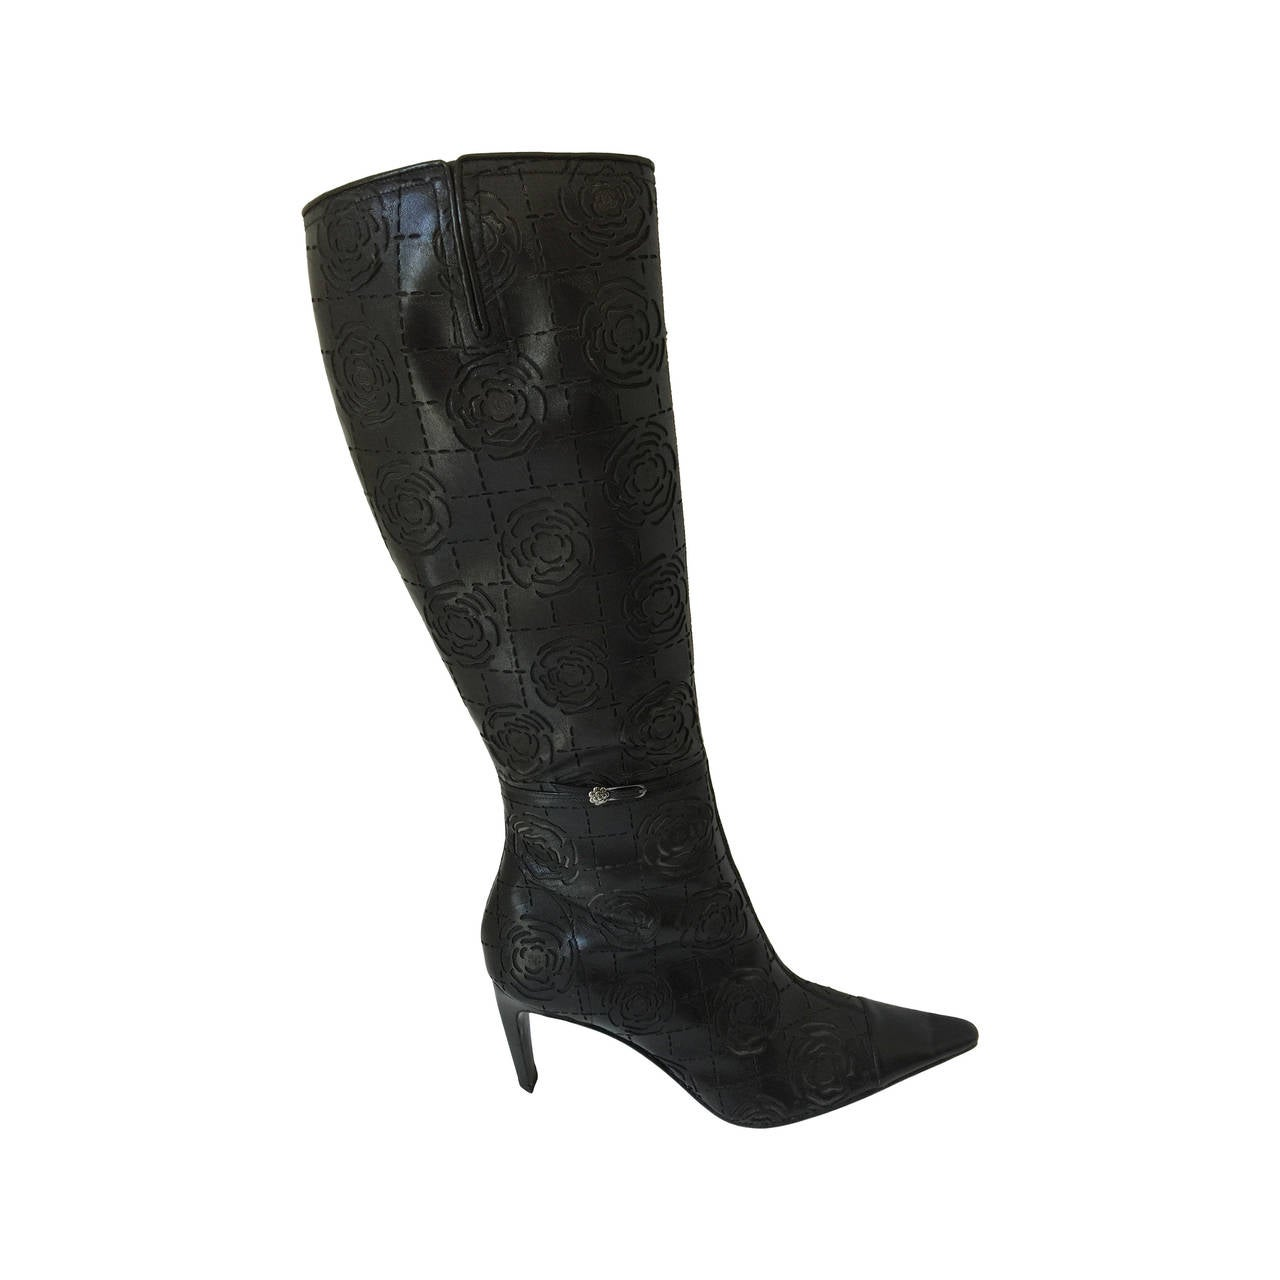 7b8e0eec4c37 Chanel Camelia Embossed Knee high Boots 371 2 at 1stdibs